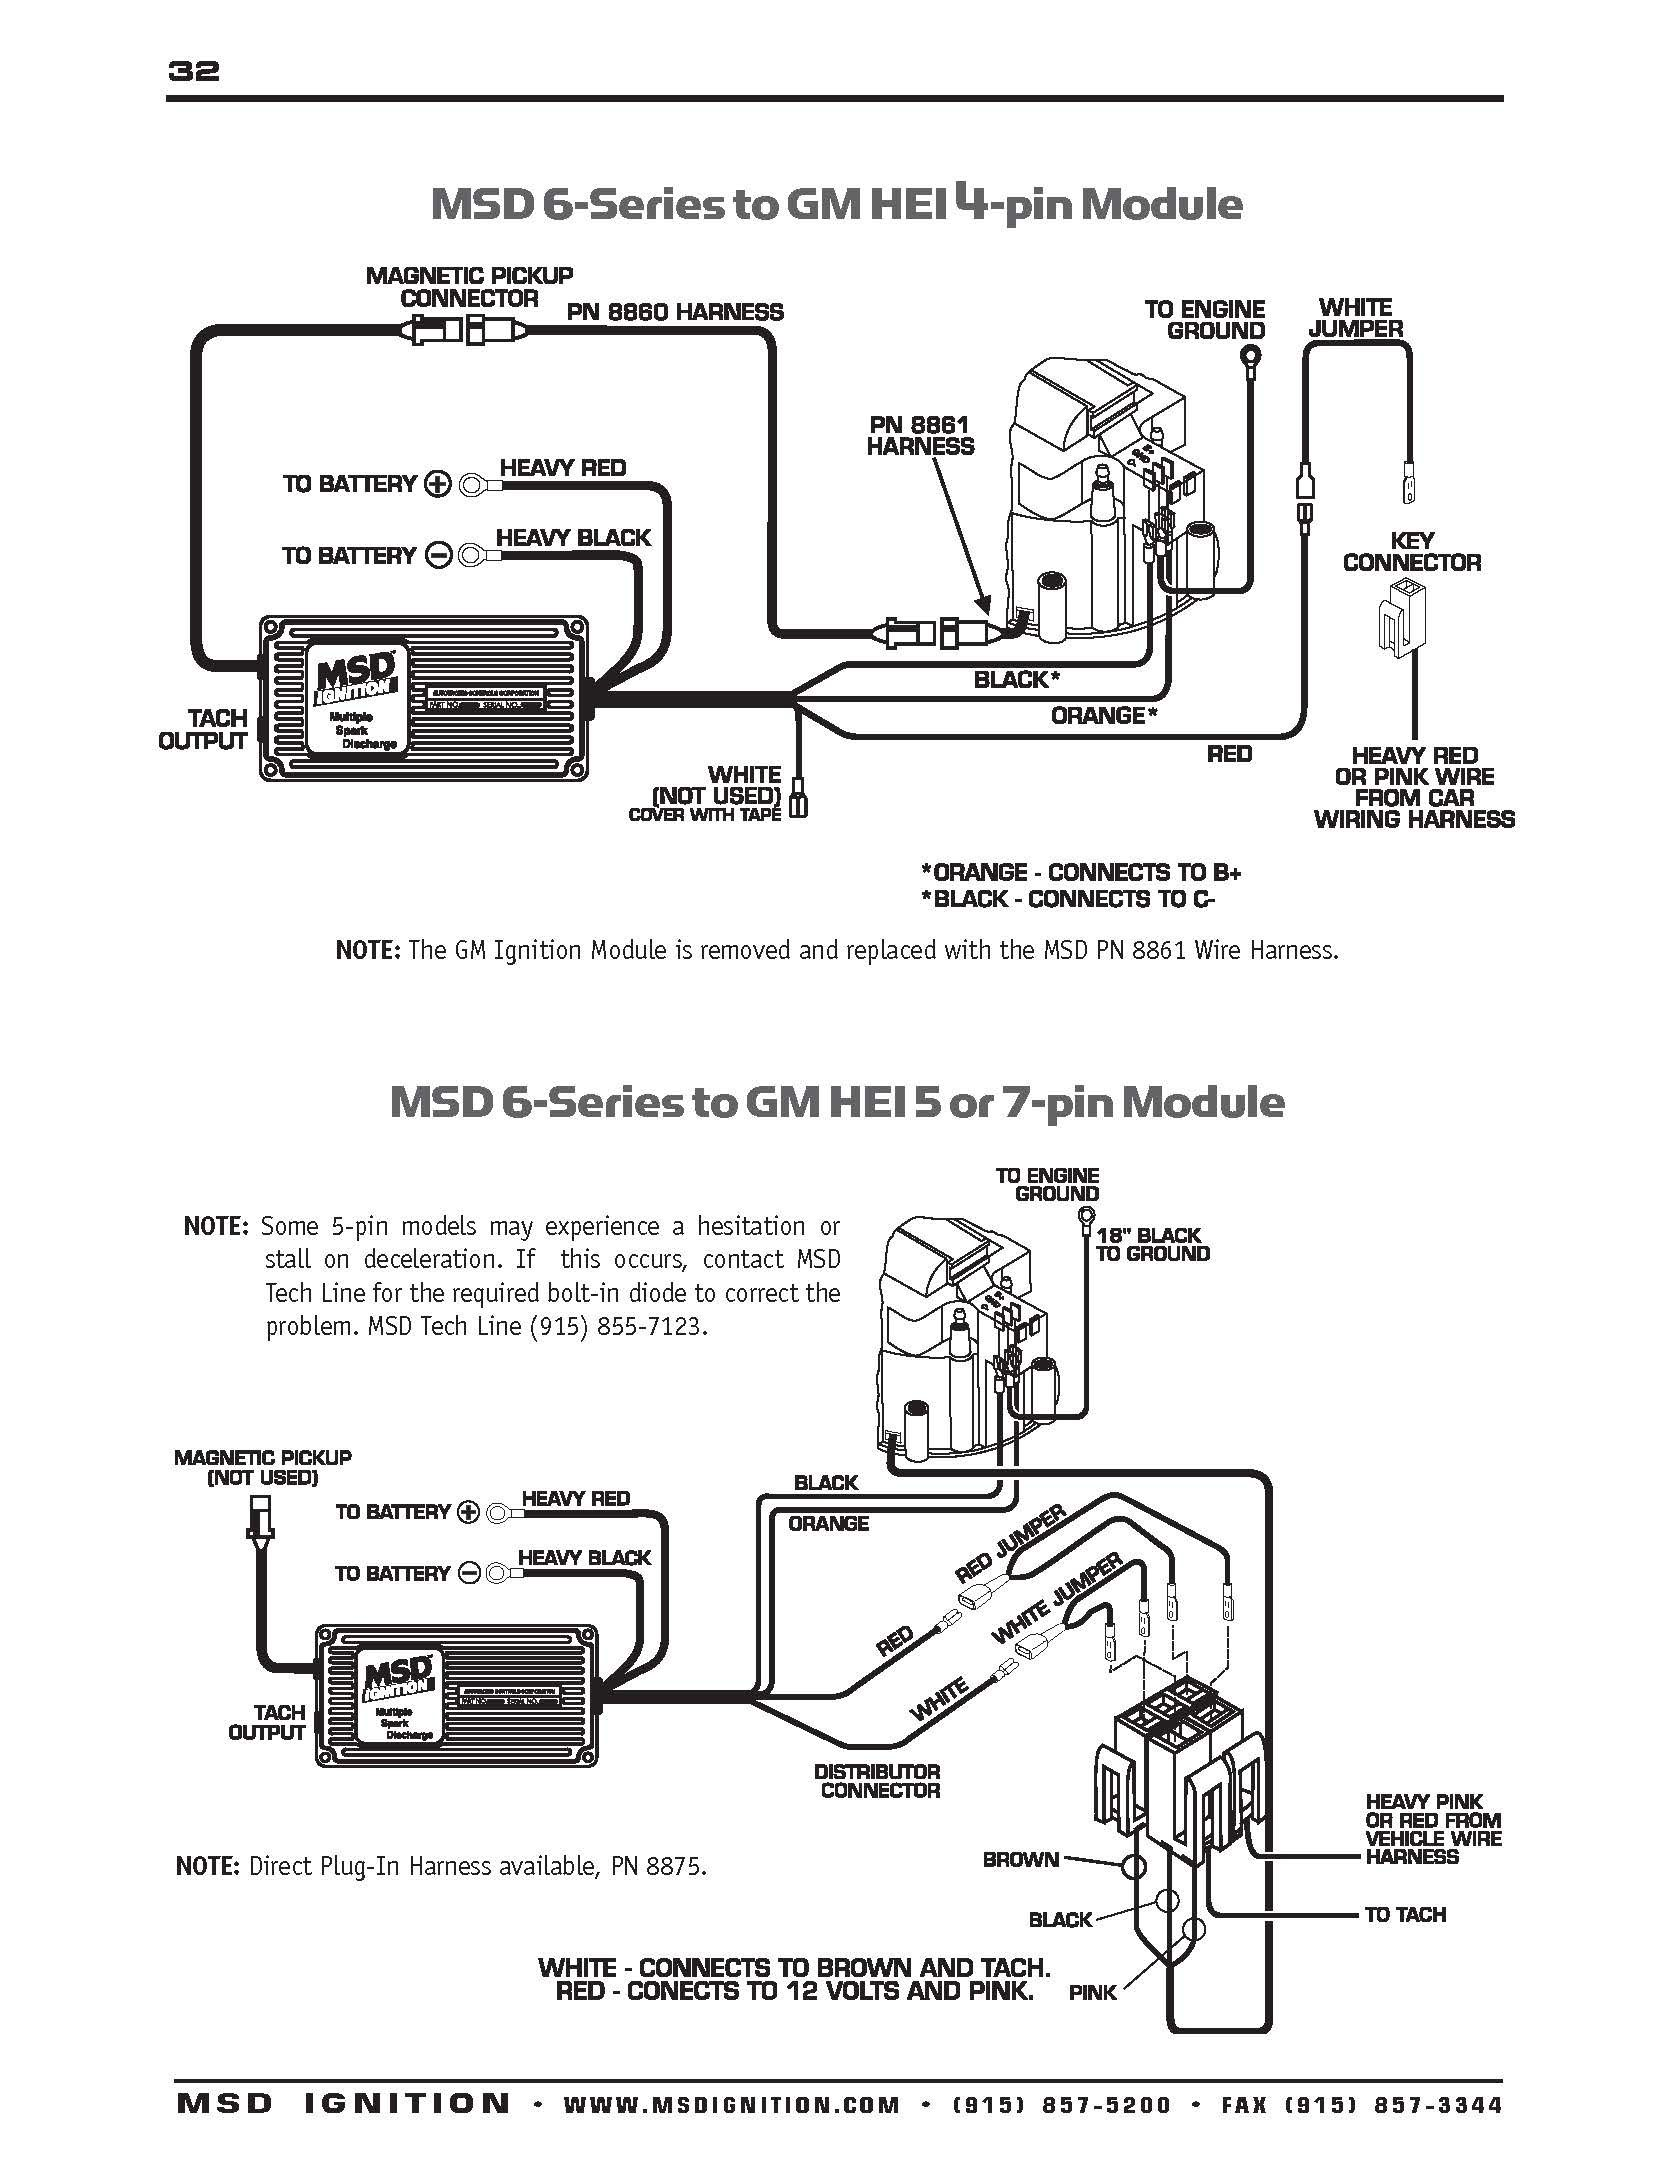 msd ignition wiring diagrams 1966 chevelle diagram, mechanical Automotive Ignition Wiring